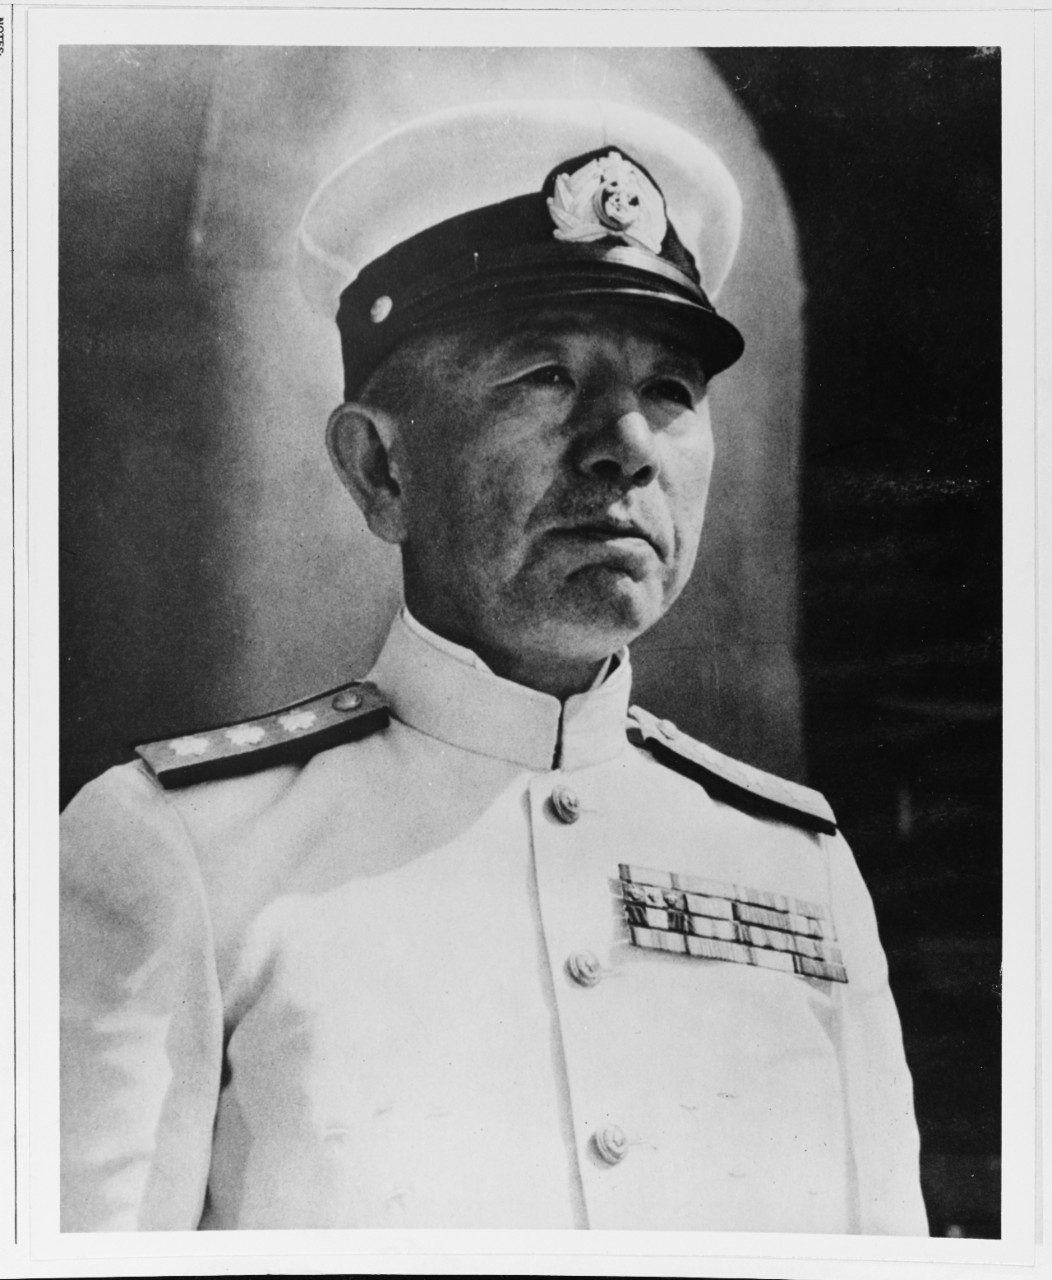 Admiral Mineichi Koga . Photo from history.navy.mil/